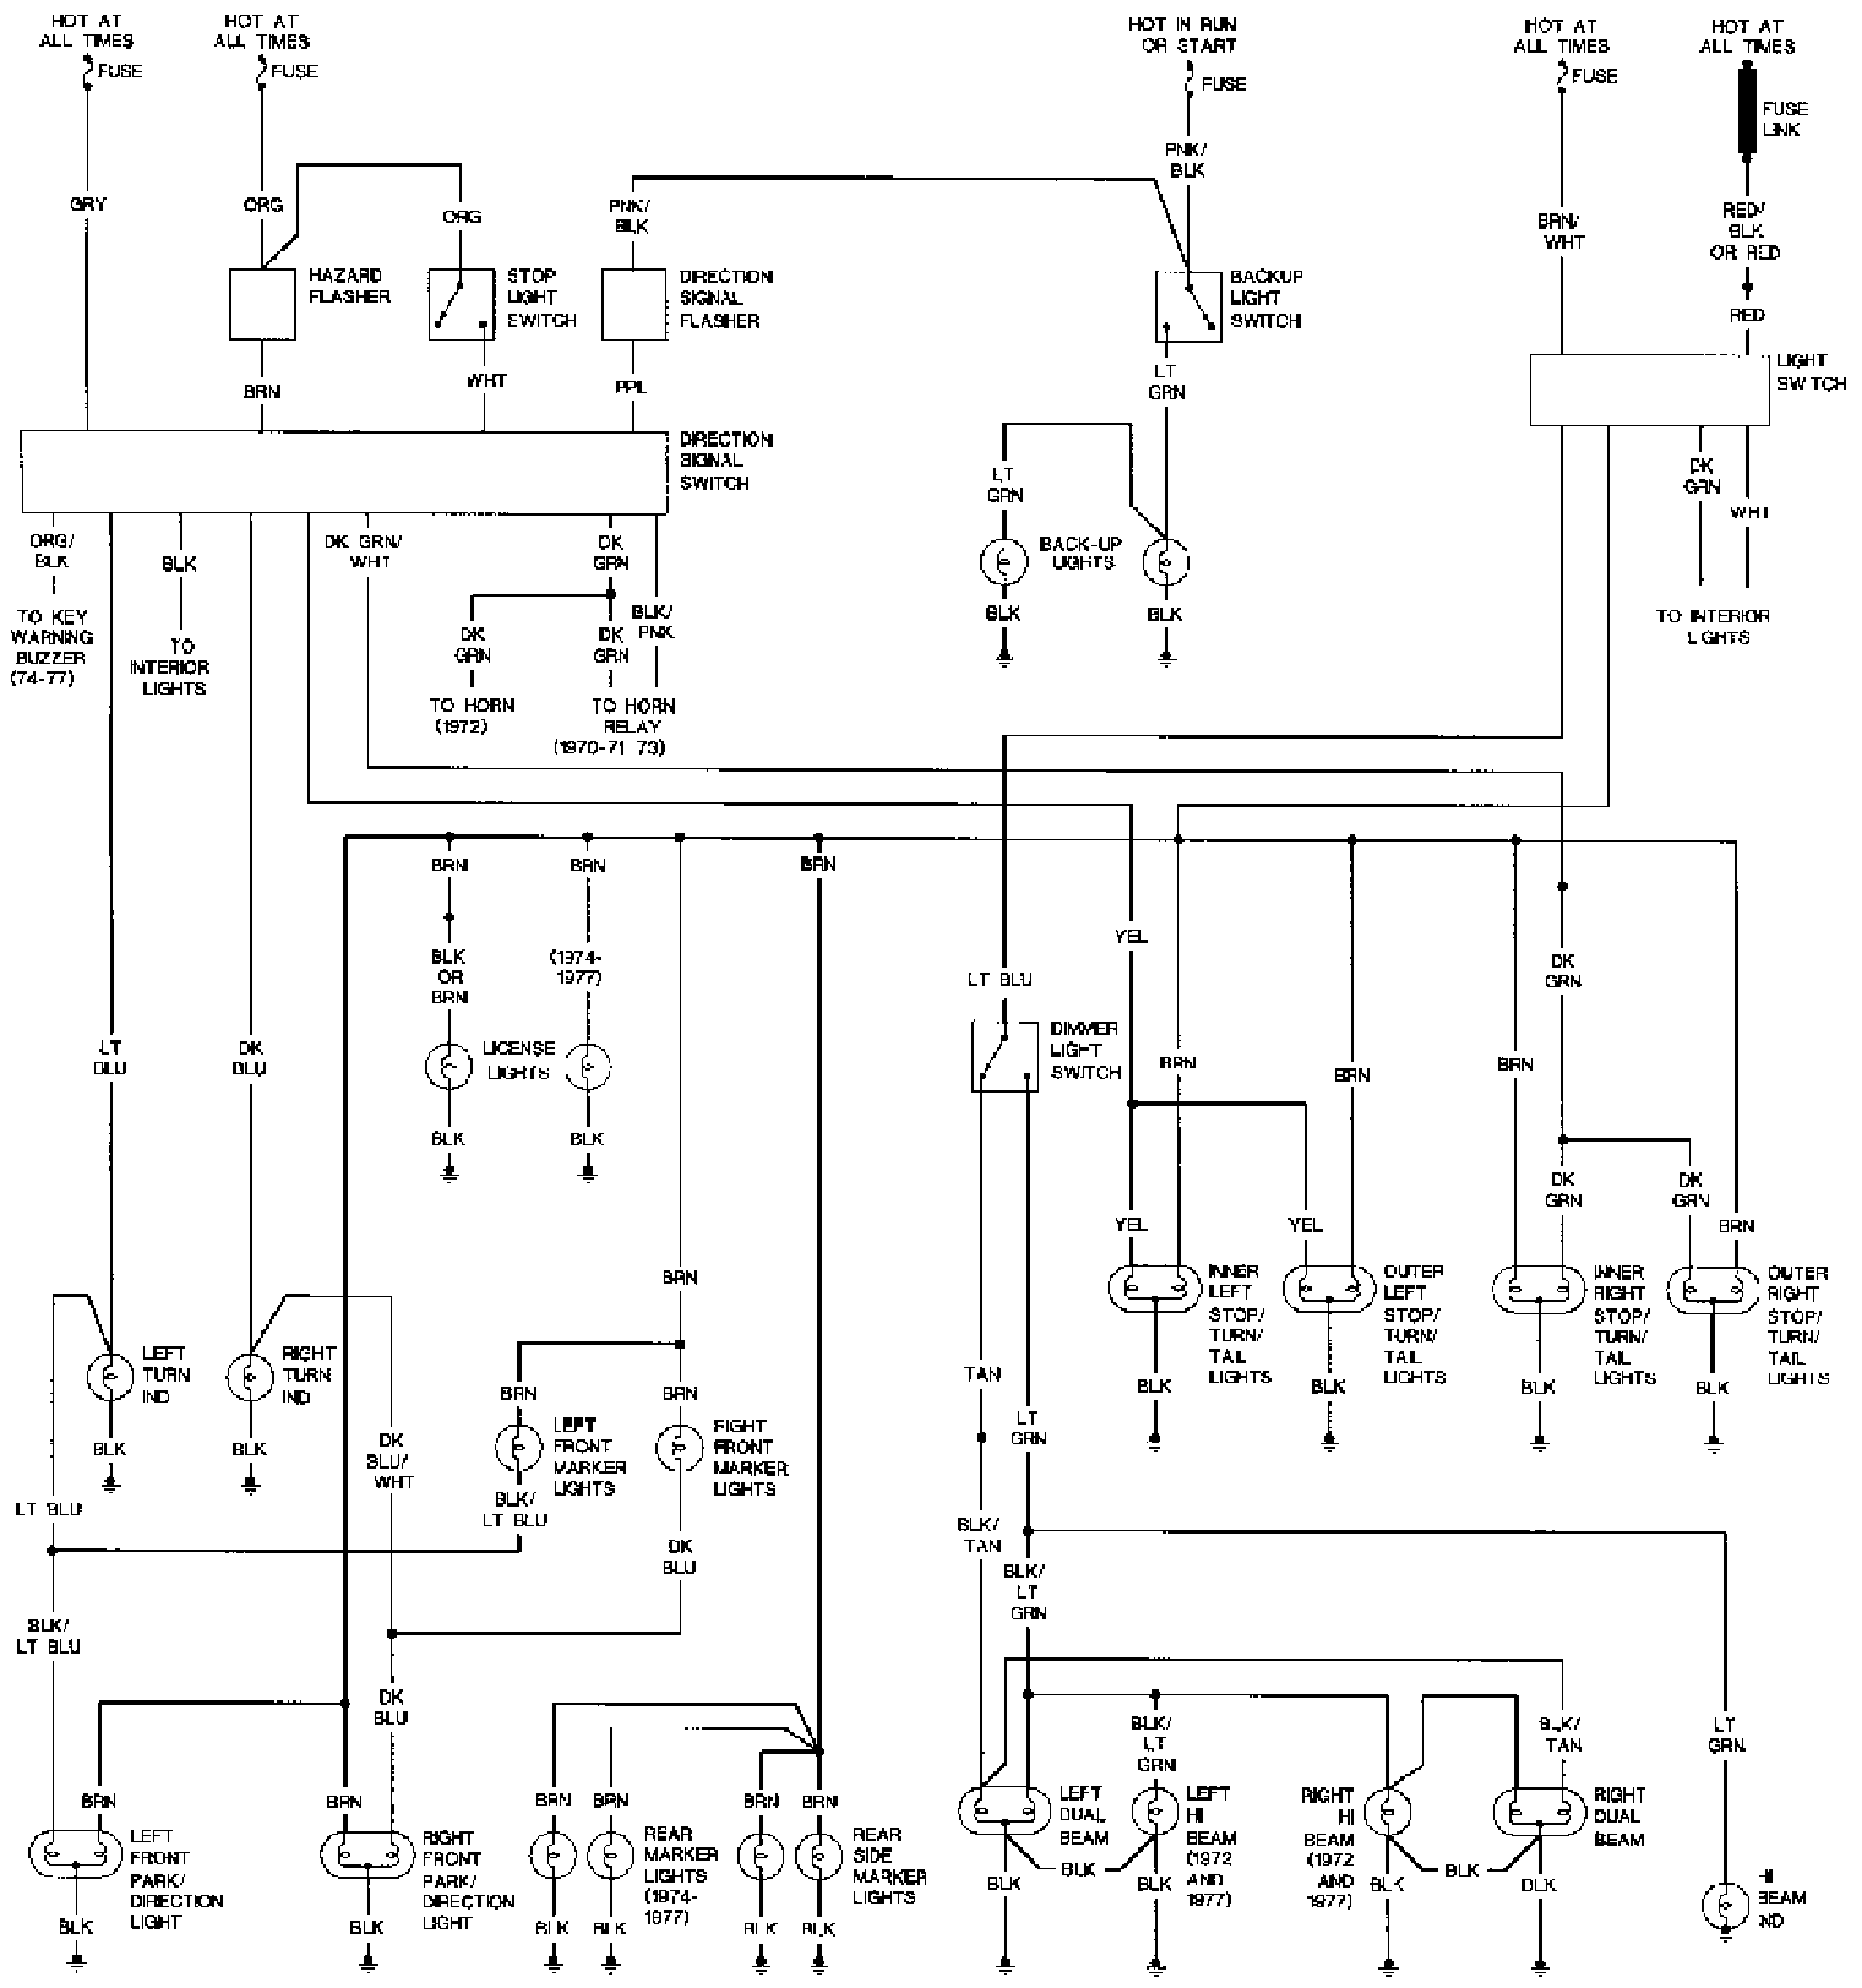 1969 Firebird Wiring Harness Diagram Schematic 2007 Toyota Camry Interior Fuse Box Bege Wiring Diagram